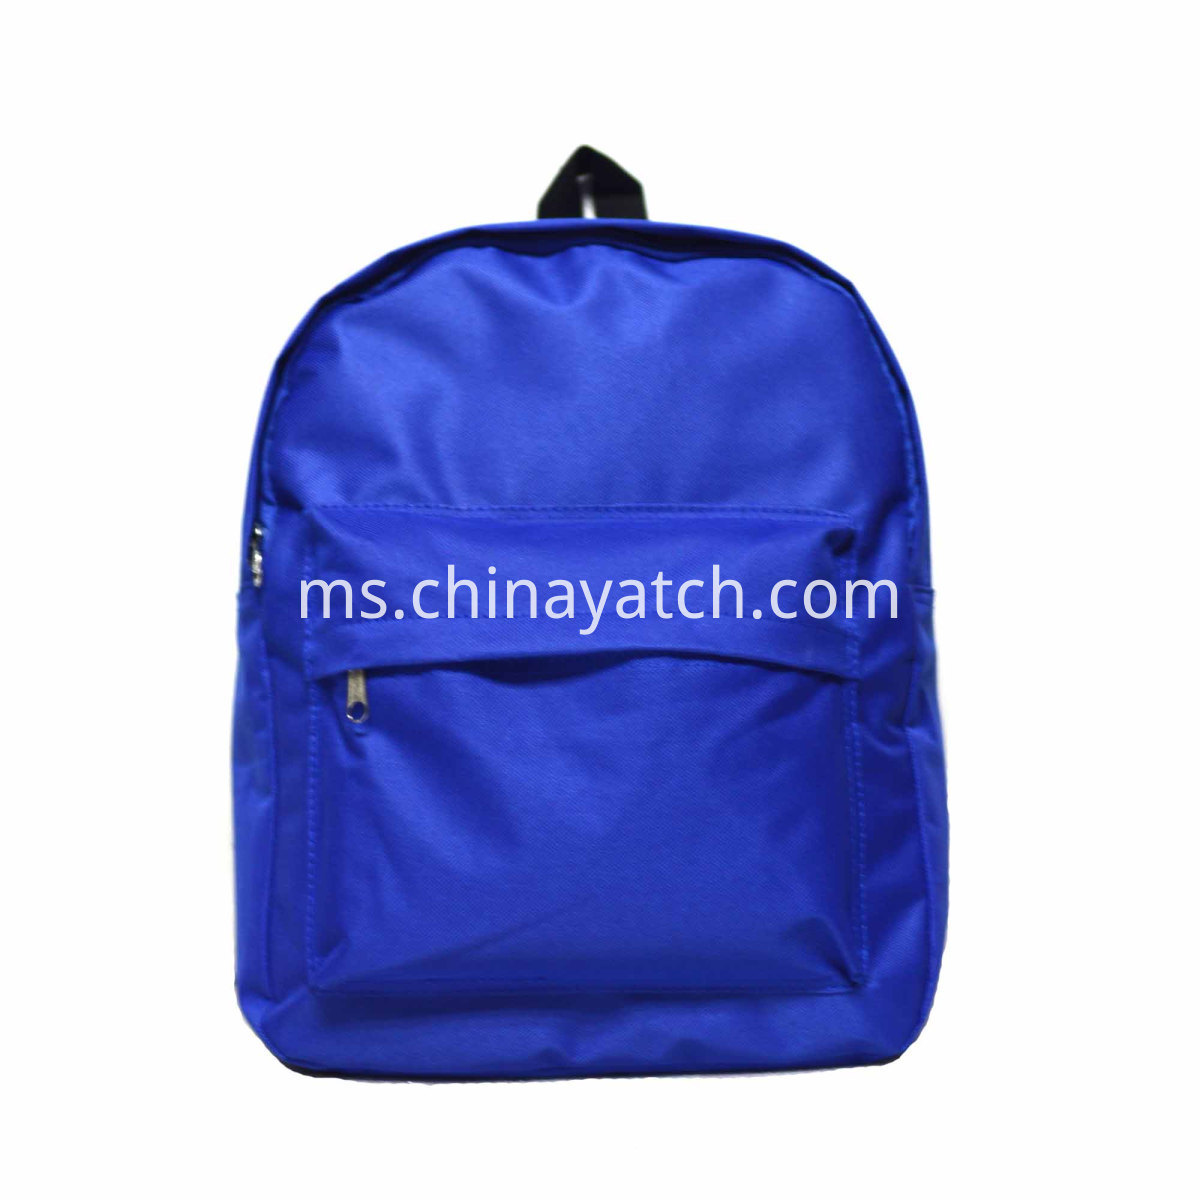 Blue 600D Backpack without Lining